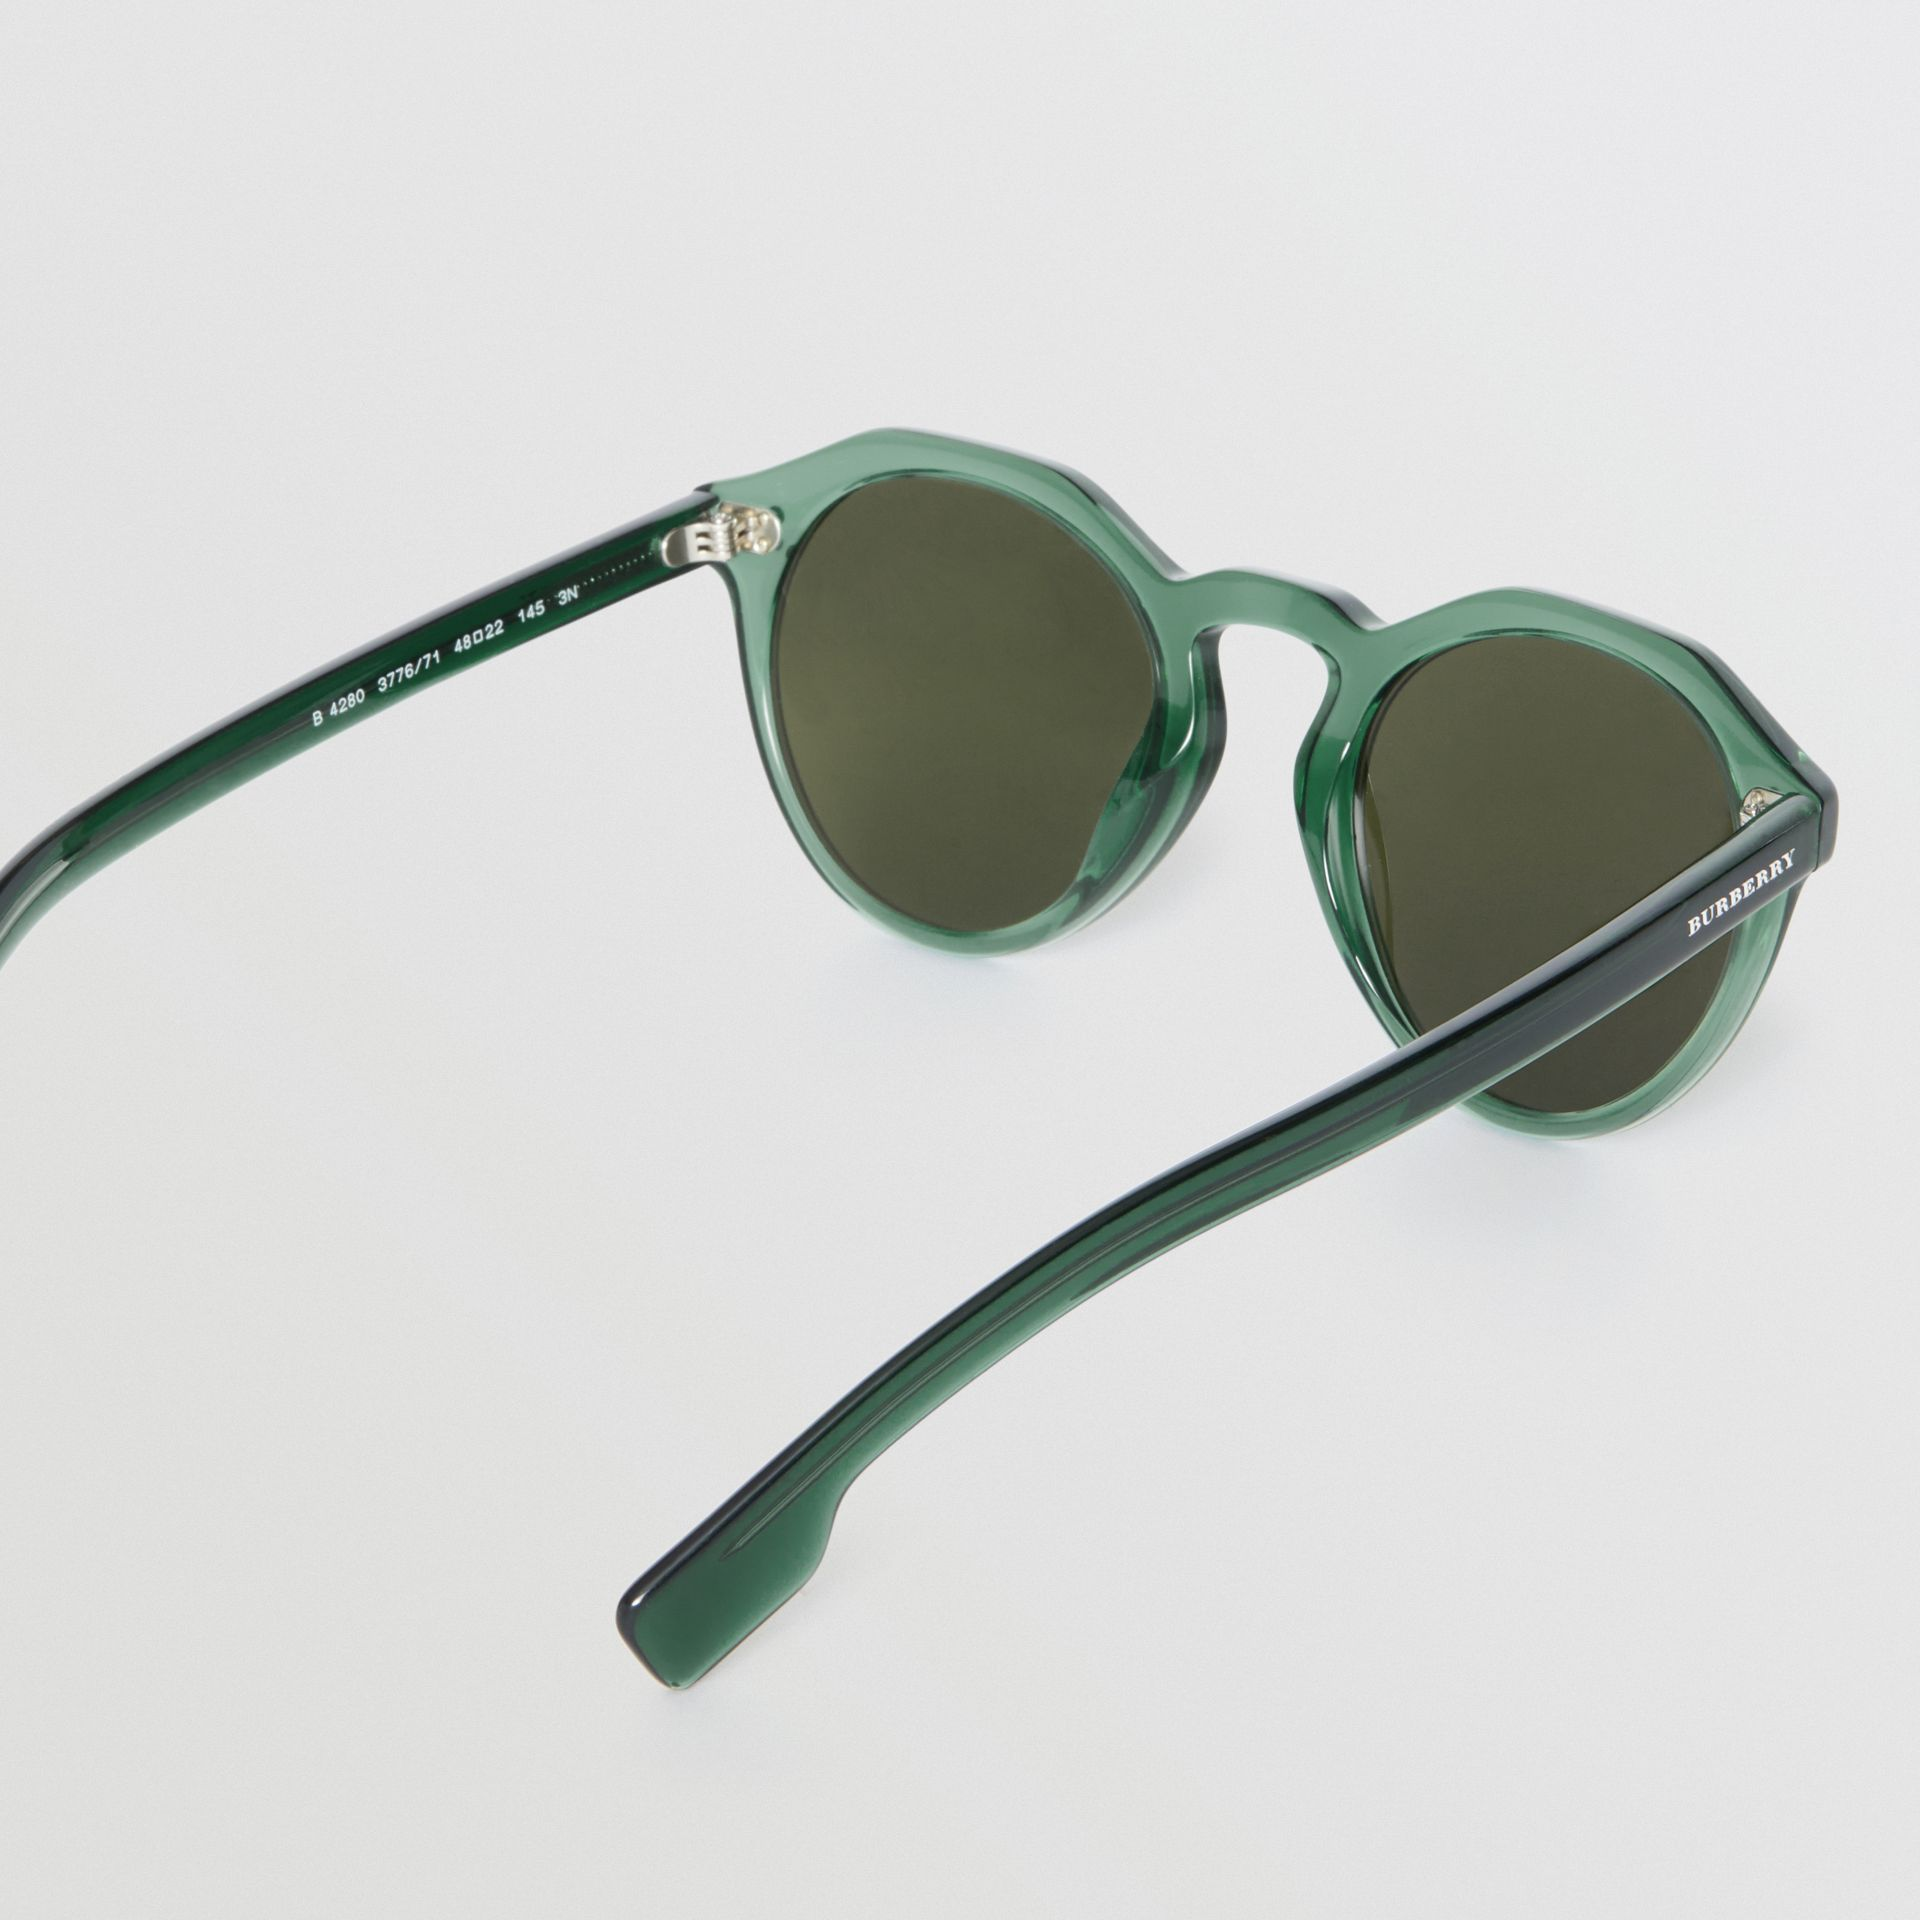 Keyhole Round Frame Sunglasses in Green - Men | Burberry Australia - gallery image 4